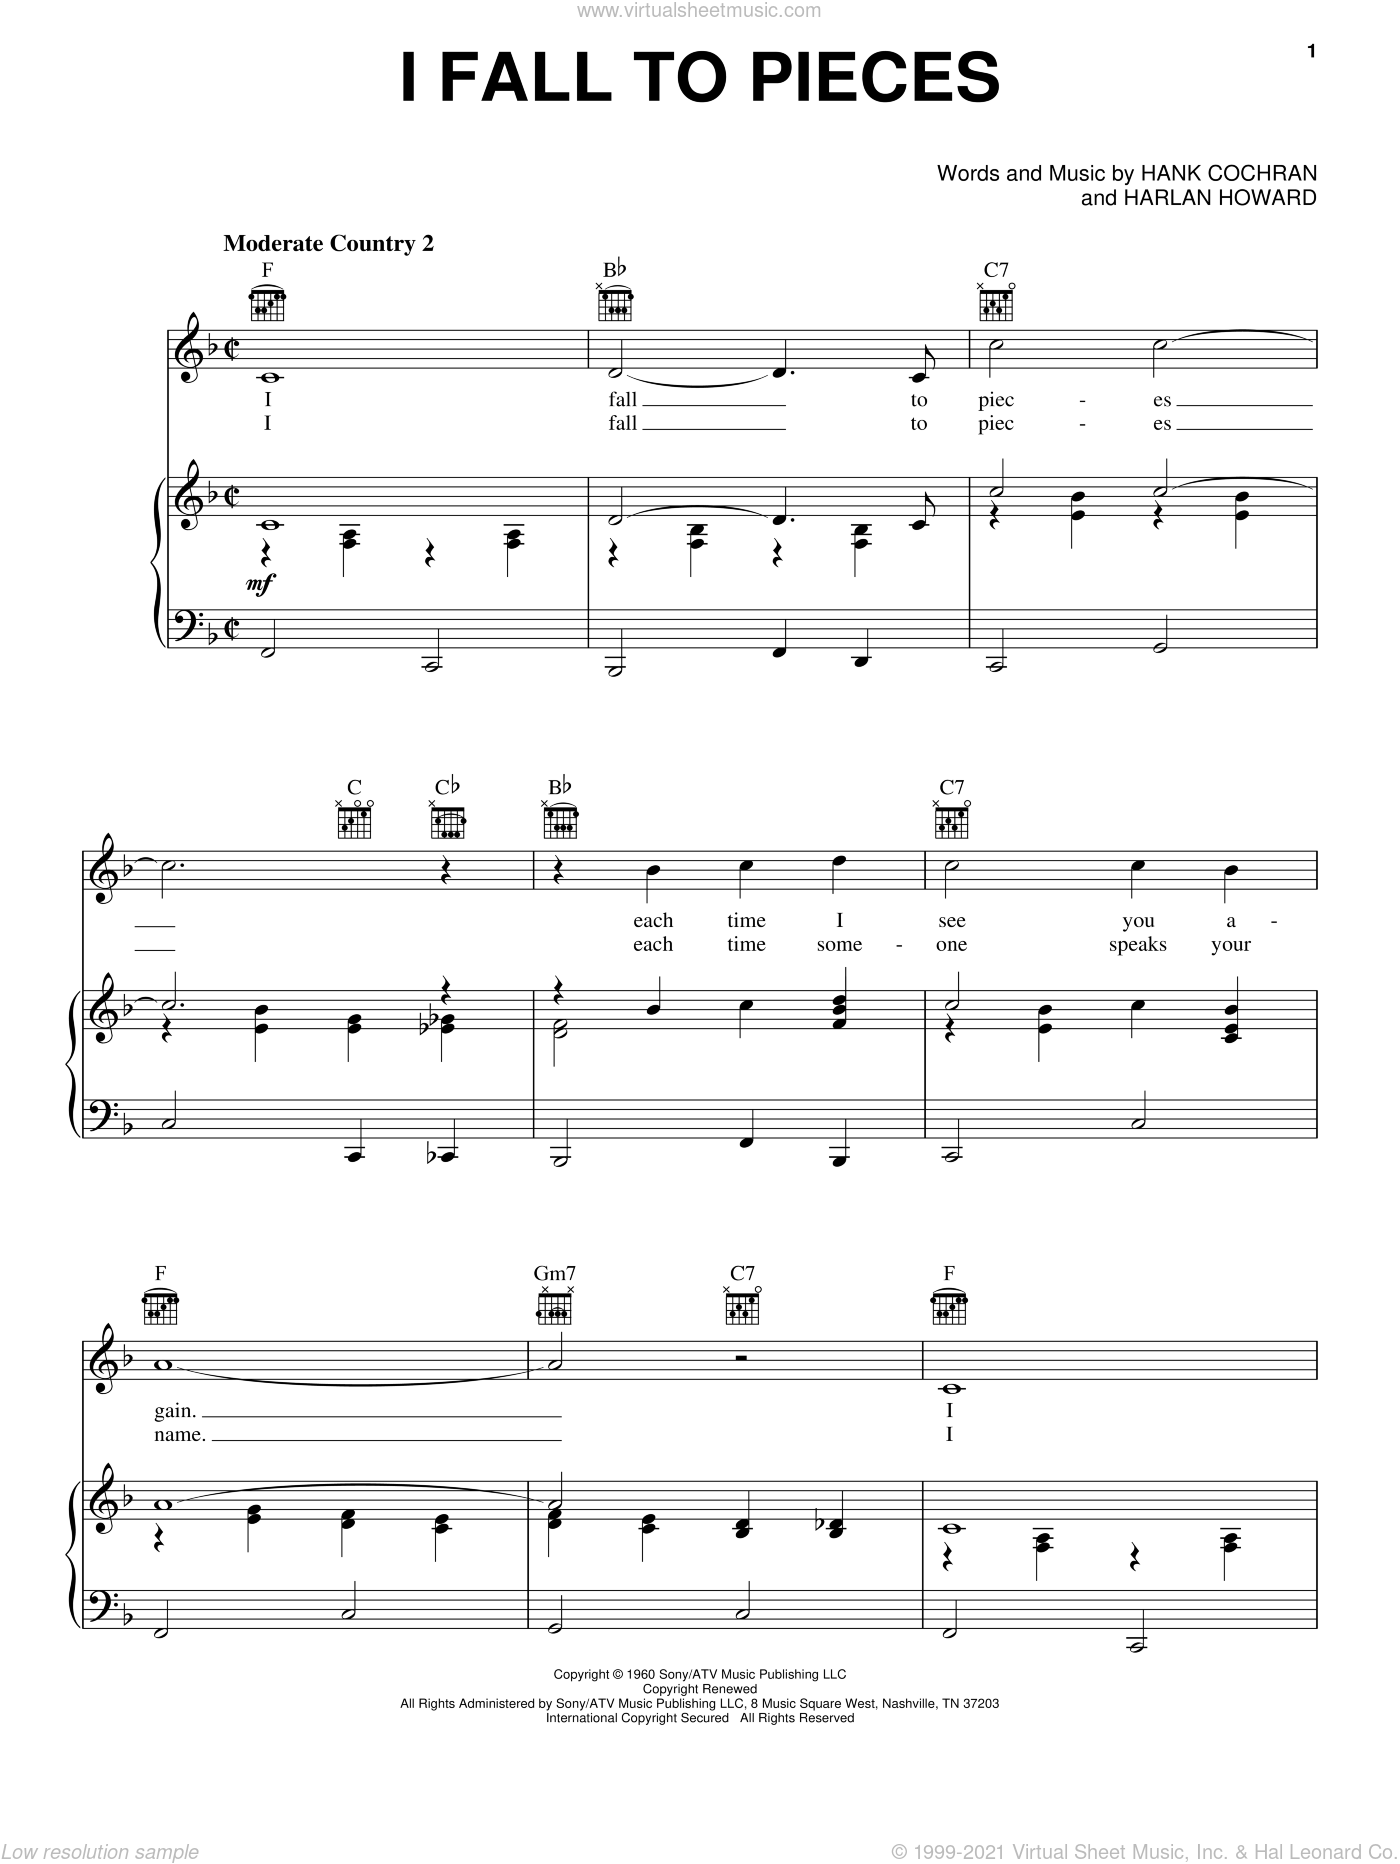 I Fall To Pieces sheet music for voice, piano or guitar by Patsy Cline, Loretta Lynn, Hank Cochran and Harlan Howard, intermediate voice, piano or guitar. Score Image Preview.